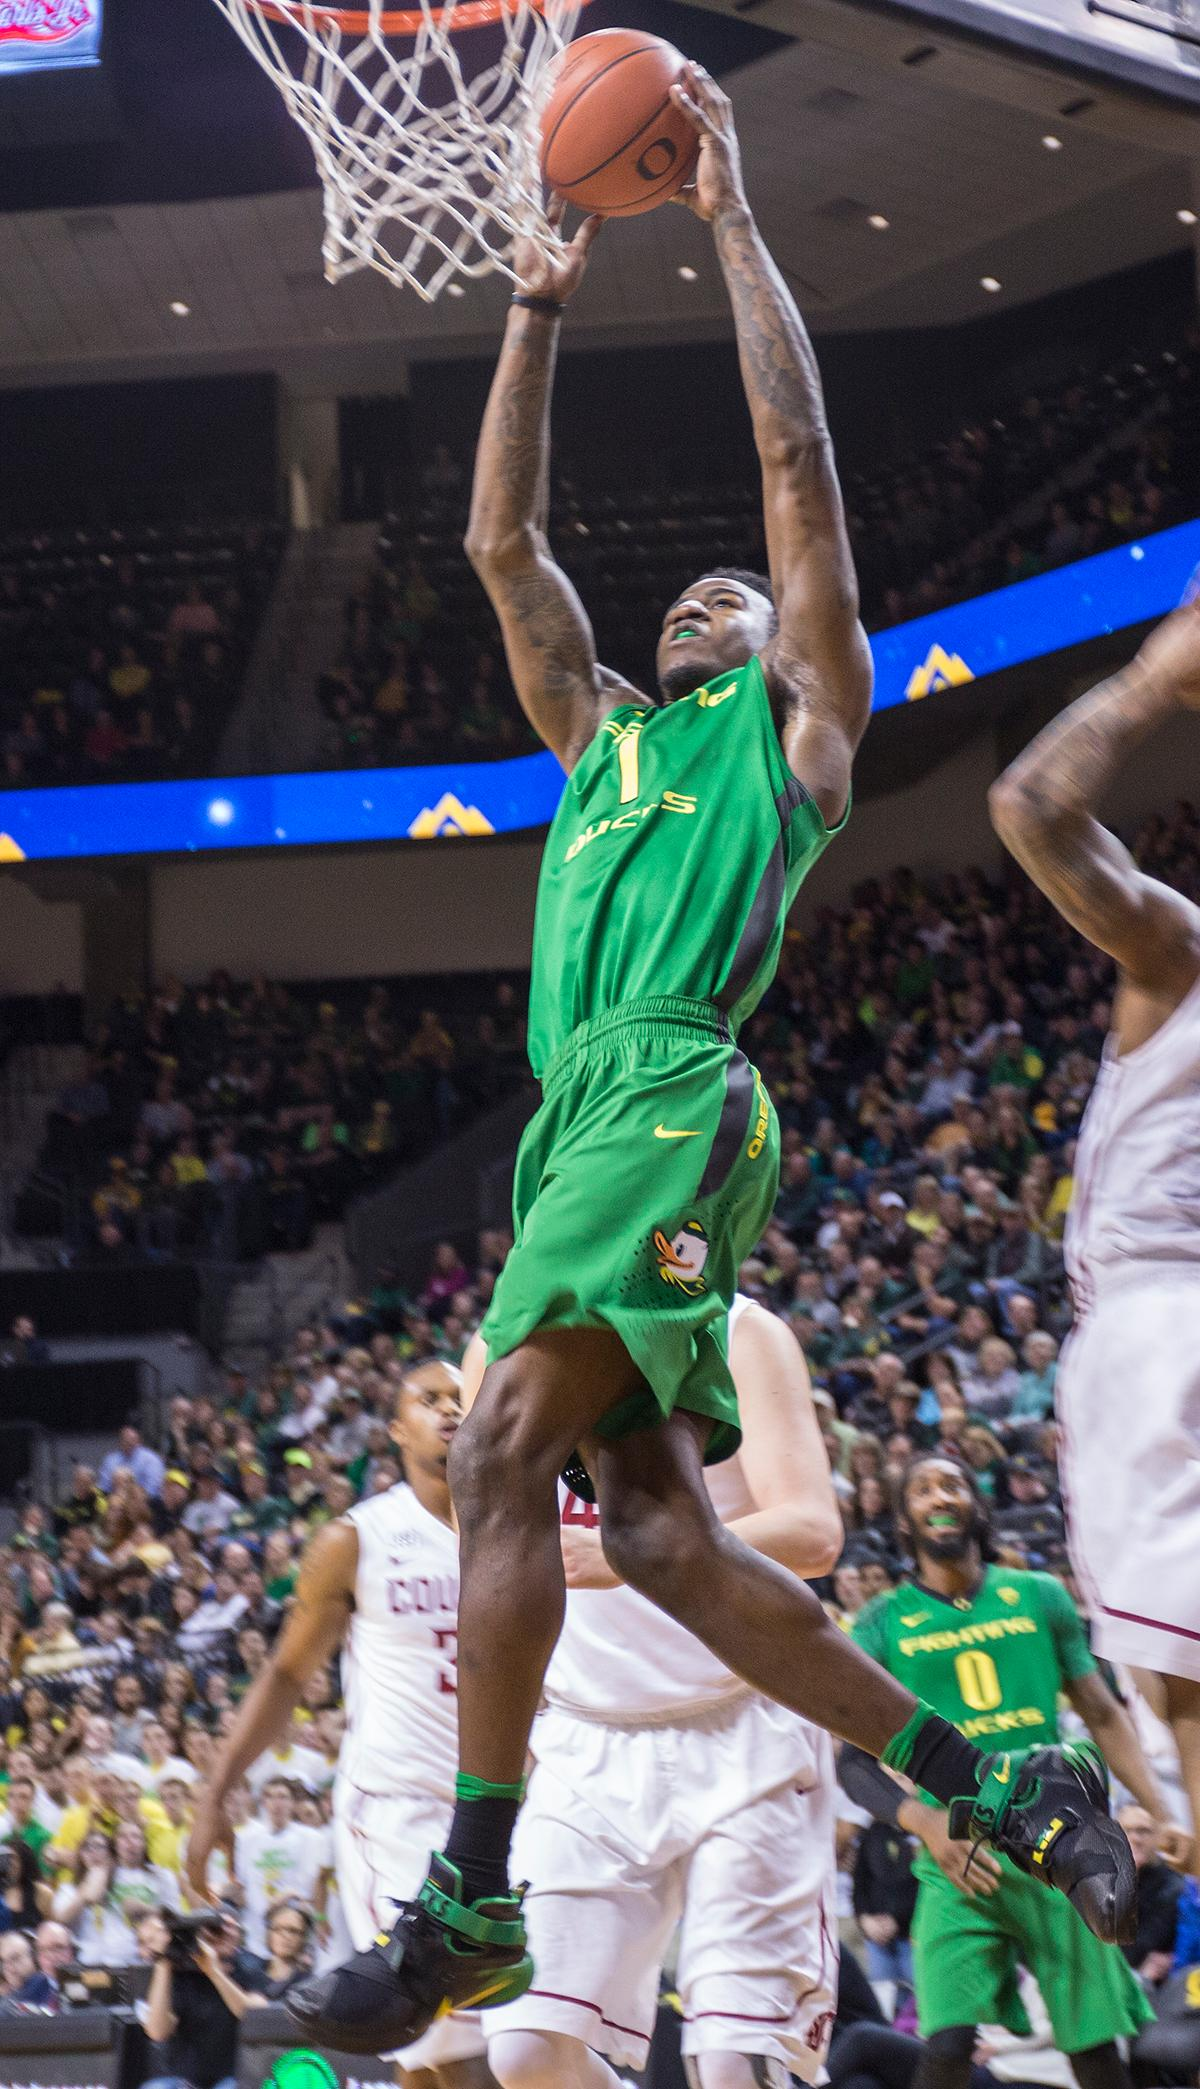 Oregon Ducks' Jordan Bell (#1) reaches for the basket during the game against the Washington State Cougars. The Ducks beat the Cougars 76-62. Kianna Cabuco, Oregon News Lab